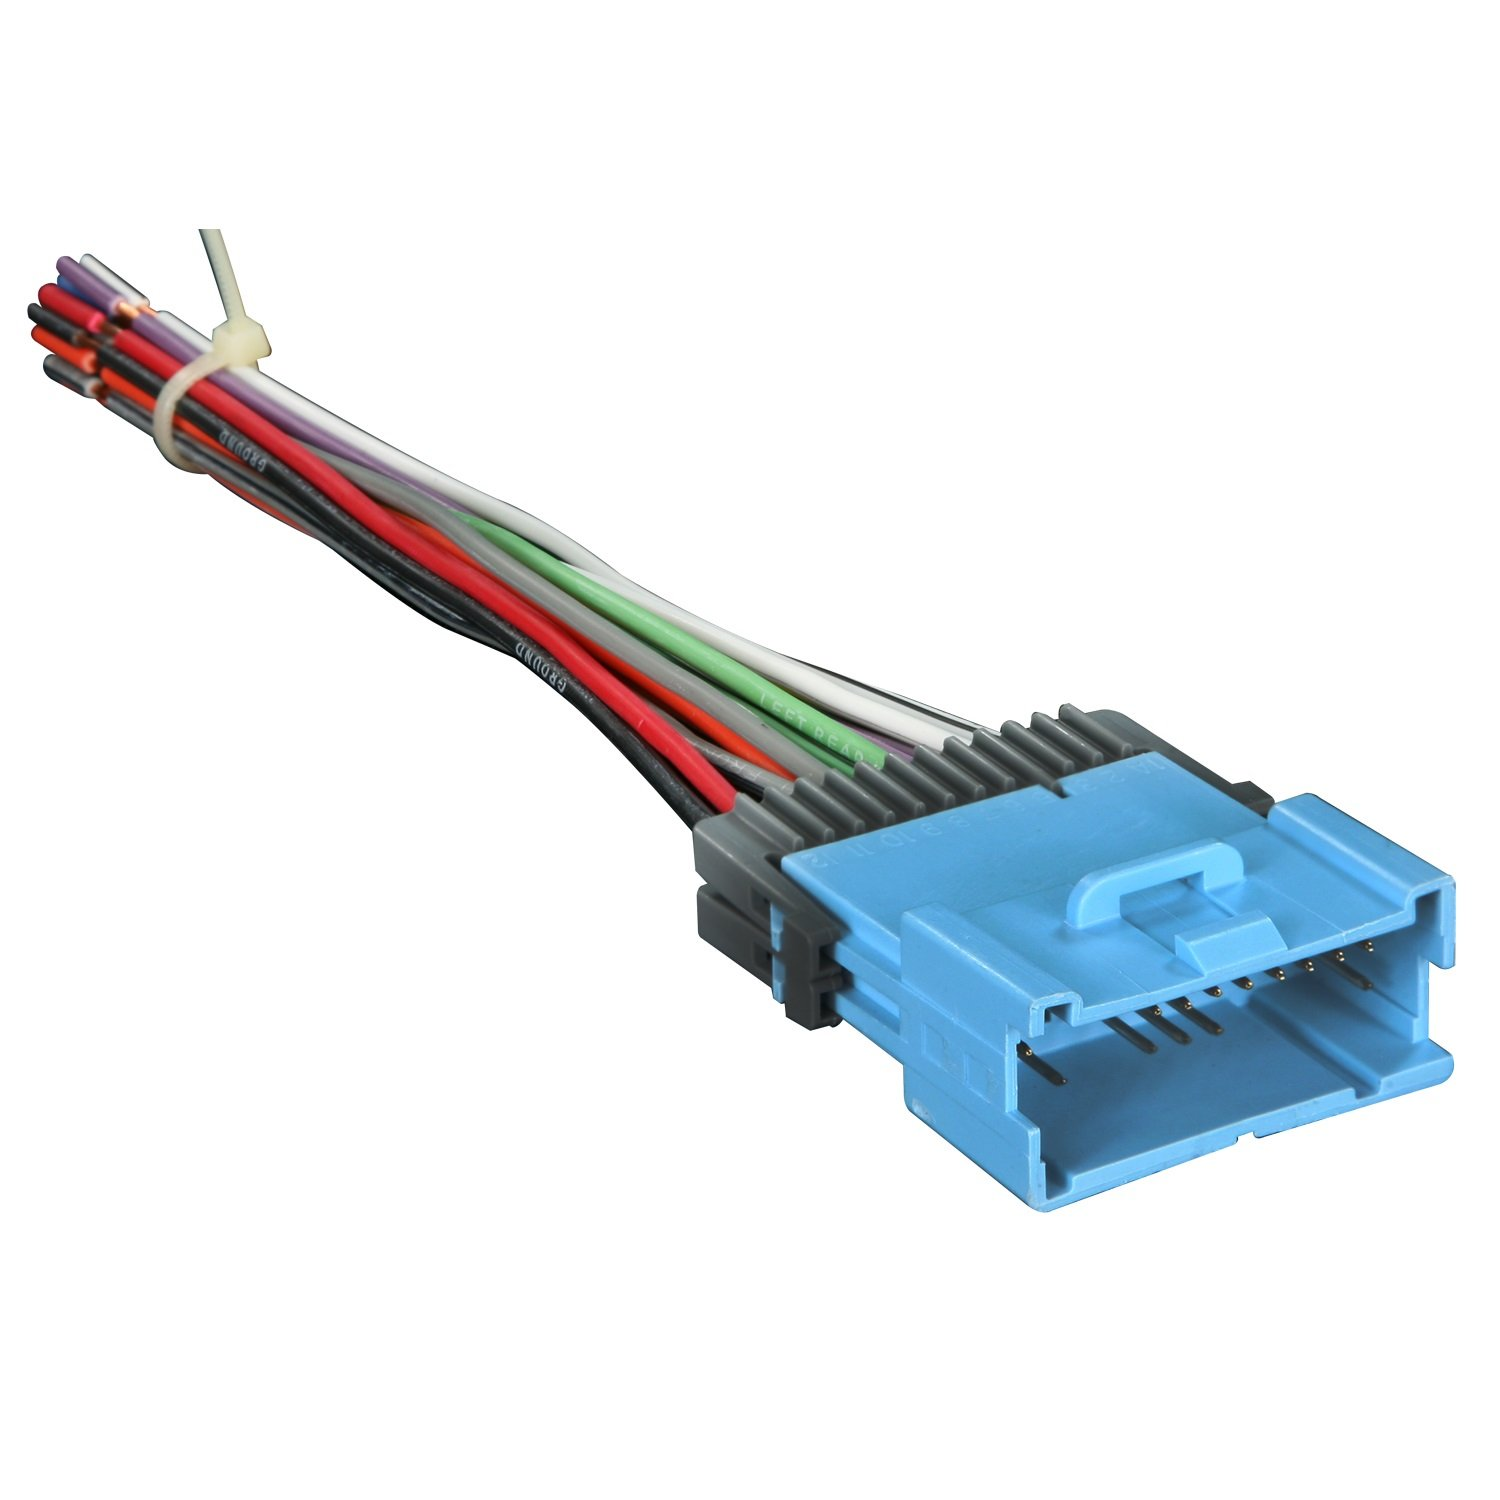 61ruWw 2aJL._SL1500_ amazon com metra 70 2102 radio wiring harness for gm 04 05 car GM Wiring Color Codes at gsmx.co